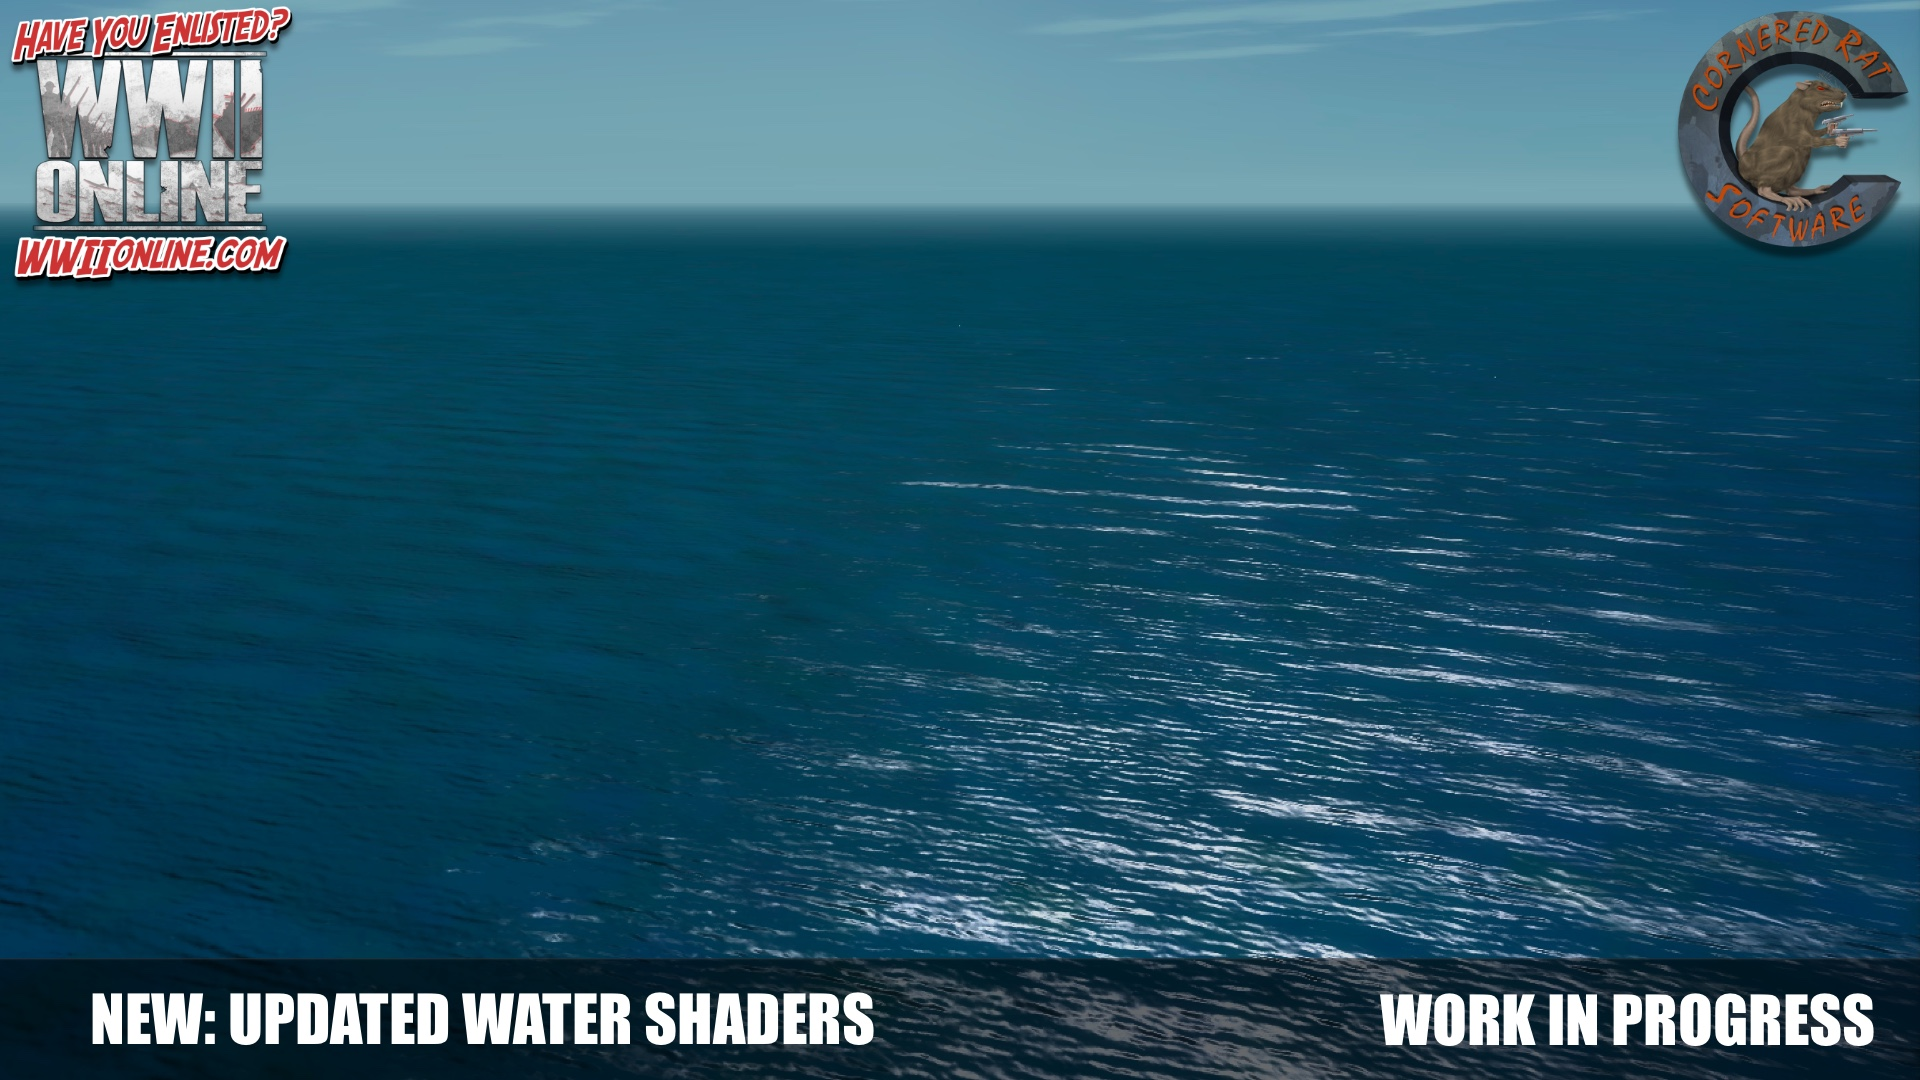 2 water shaders new